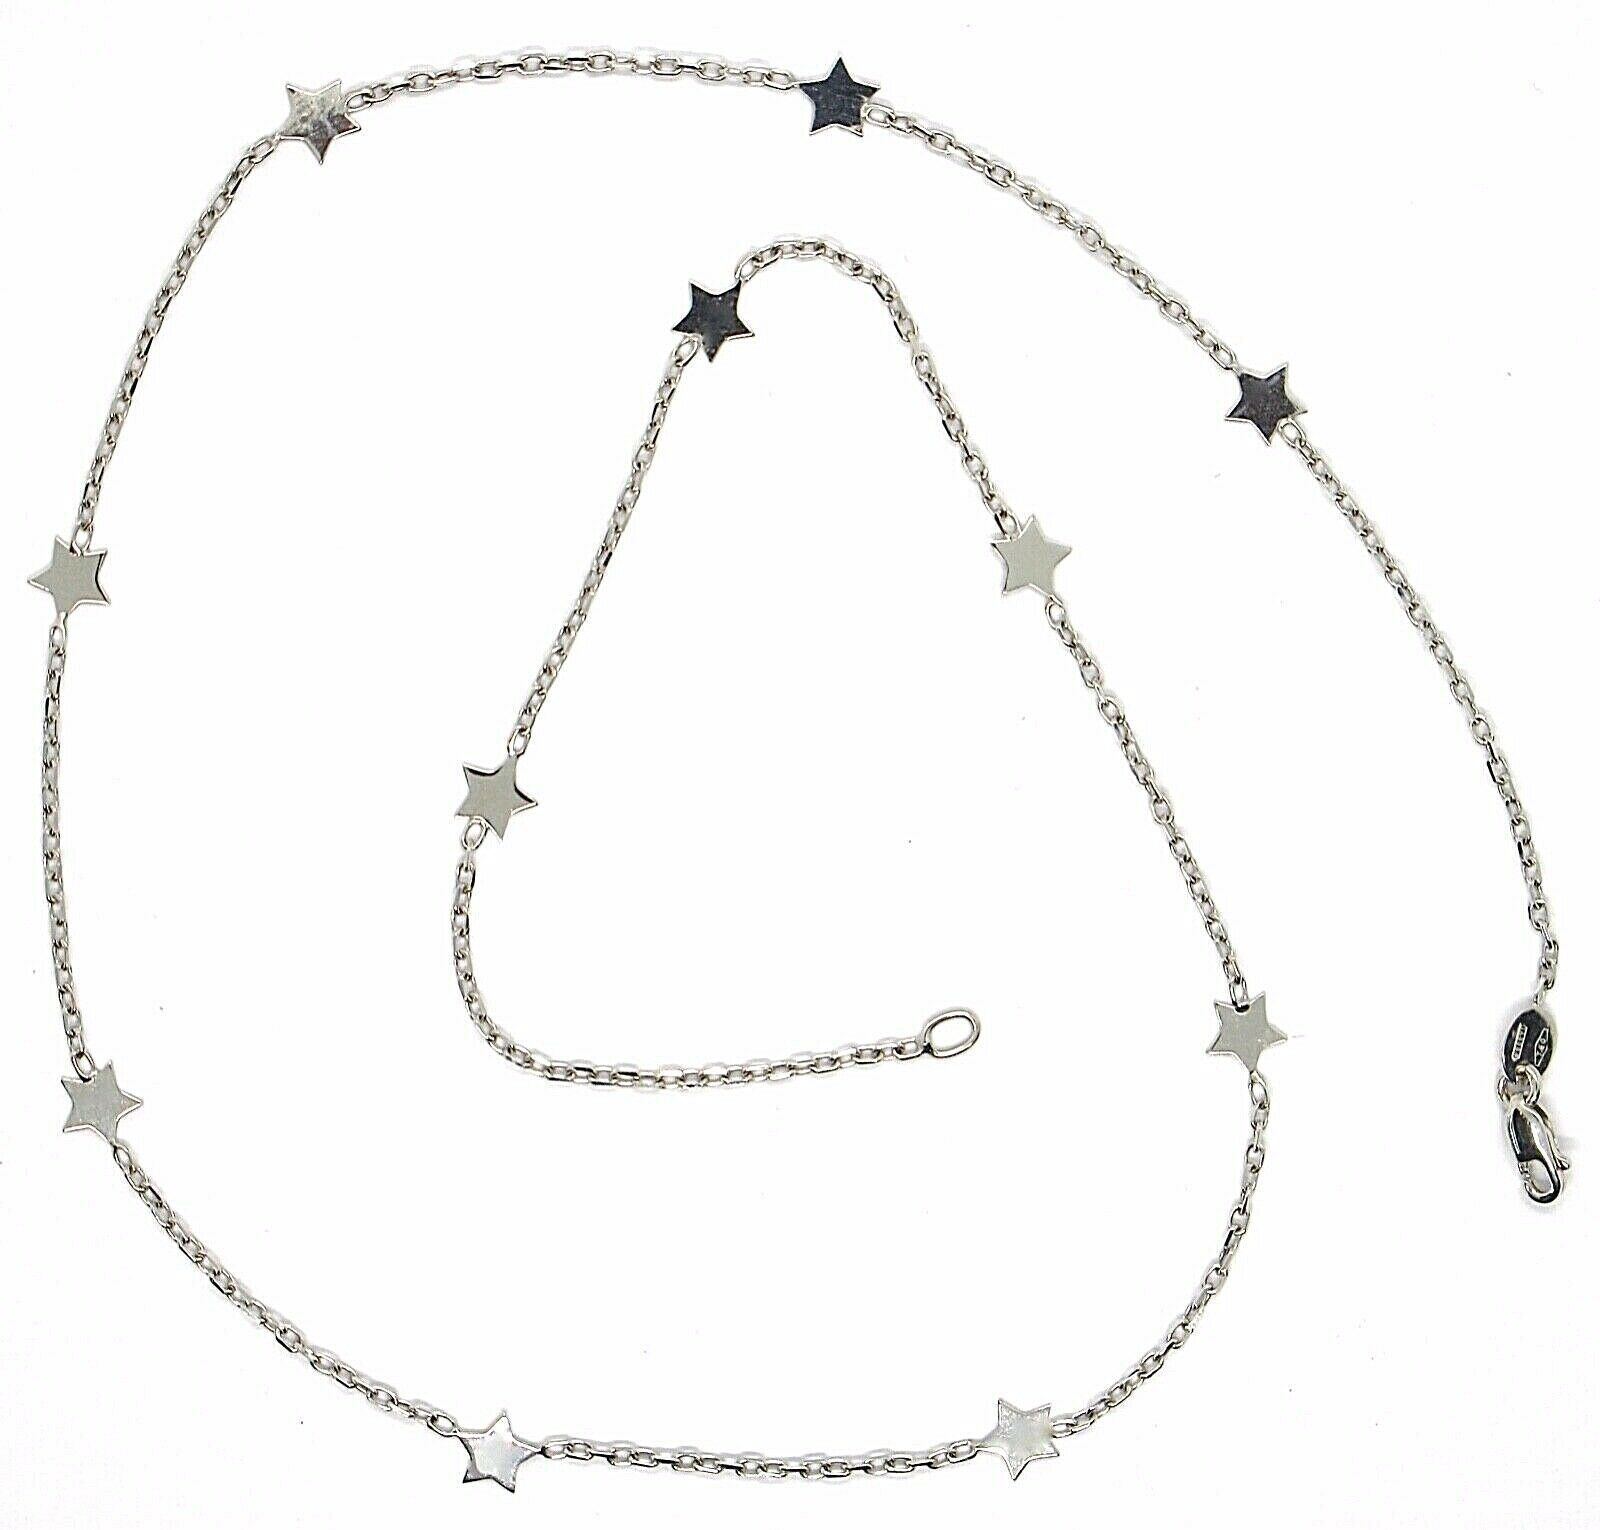 18K WHITE GOLD NECKLACE WITH FLAT STARS, SQUARE CABLE ROLO CHAIN, 16.5 INCHES